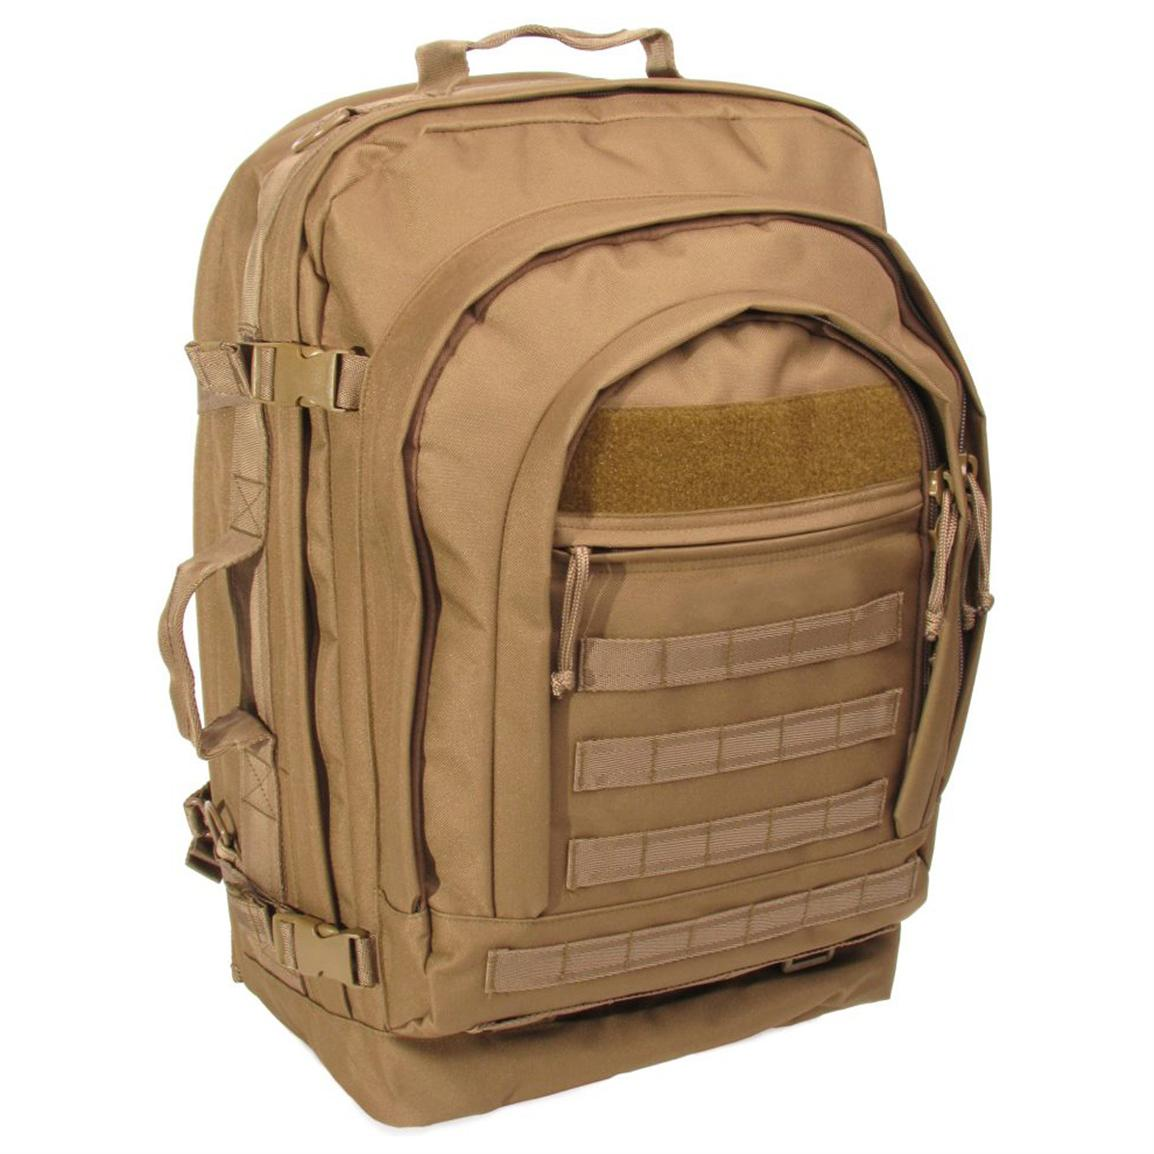 S.O.C.® 600D Poly / Canvas Bug Out Bag, Coyote Brown